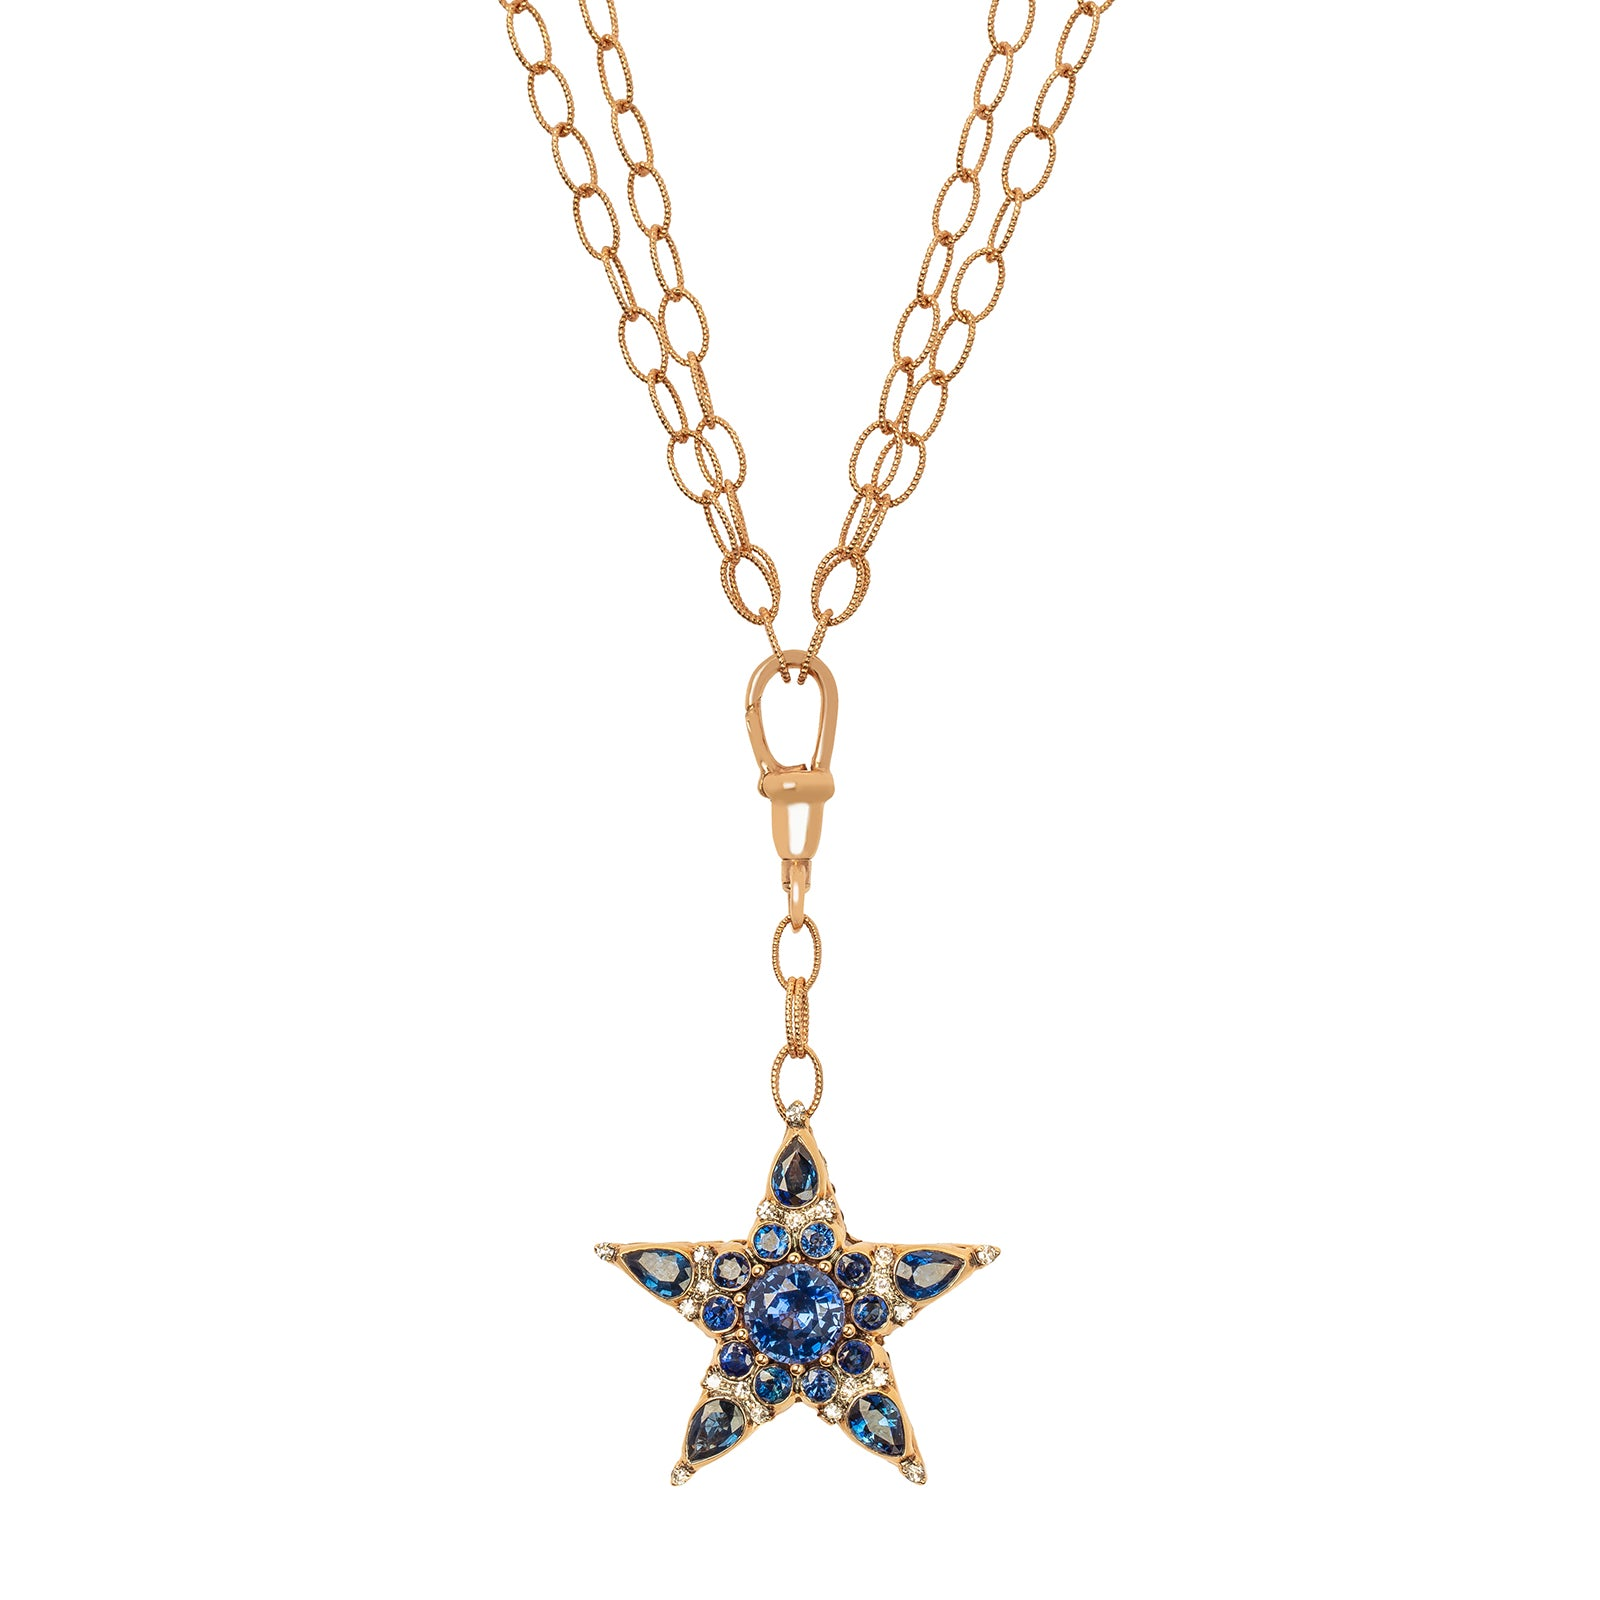 Selim Mouzannar Istanbul Star Necklace - Blue Sapphire & White Diamond - Necklaces - Broken English Jewelry